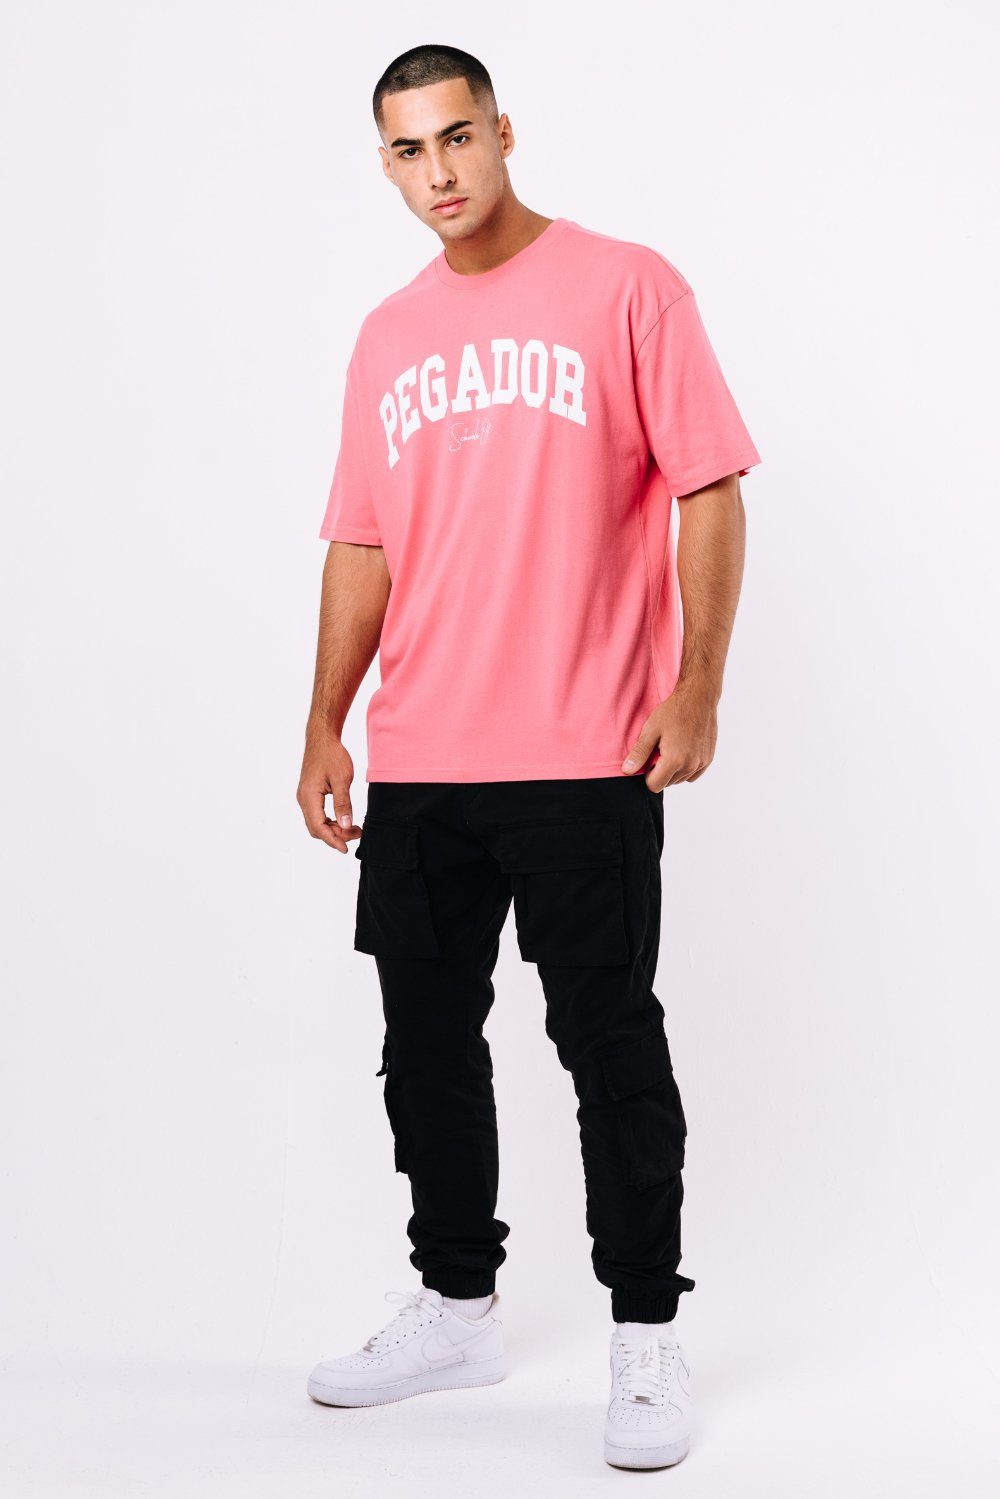 Vista Oversized Tee Washed Strawberry T-SHIRT PEGADOR